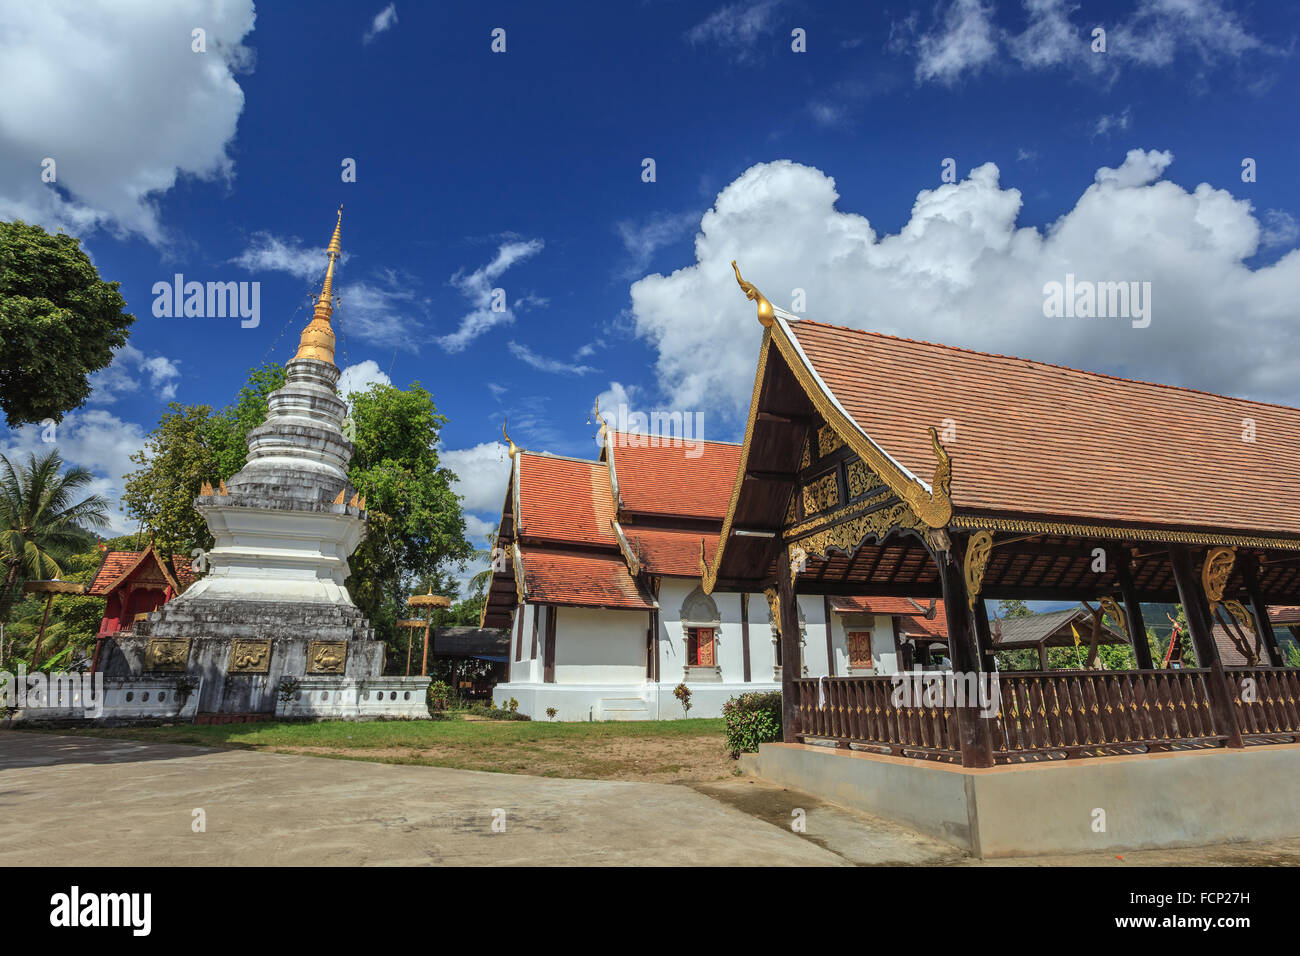 old temple at Chiang Mai province of Thailand - Stock Image